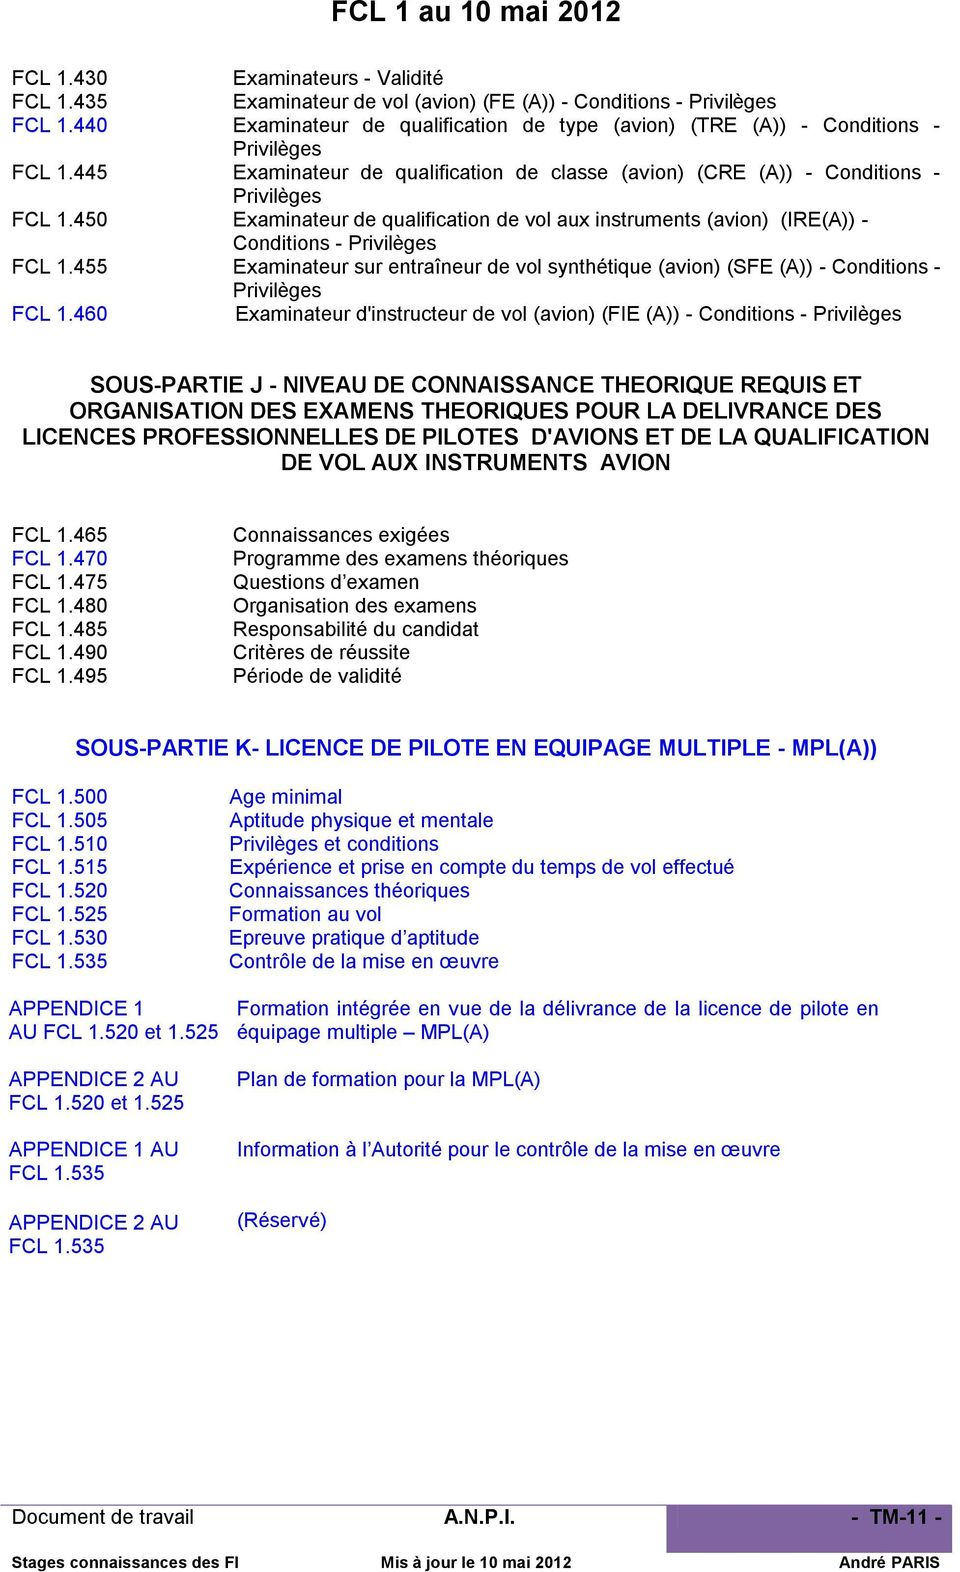 450 Examinateur de qualification de vol aux instruments (avion) (IRE(A)) - Conditions - Privilèges FCL 1.